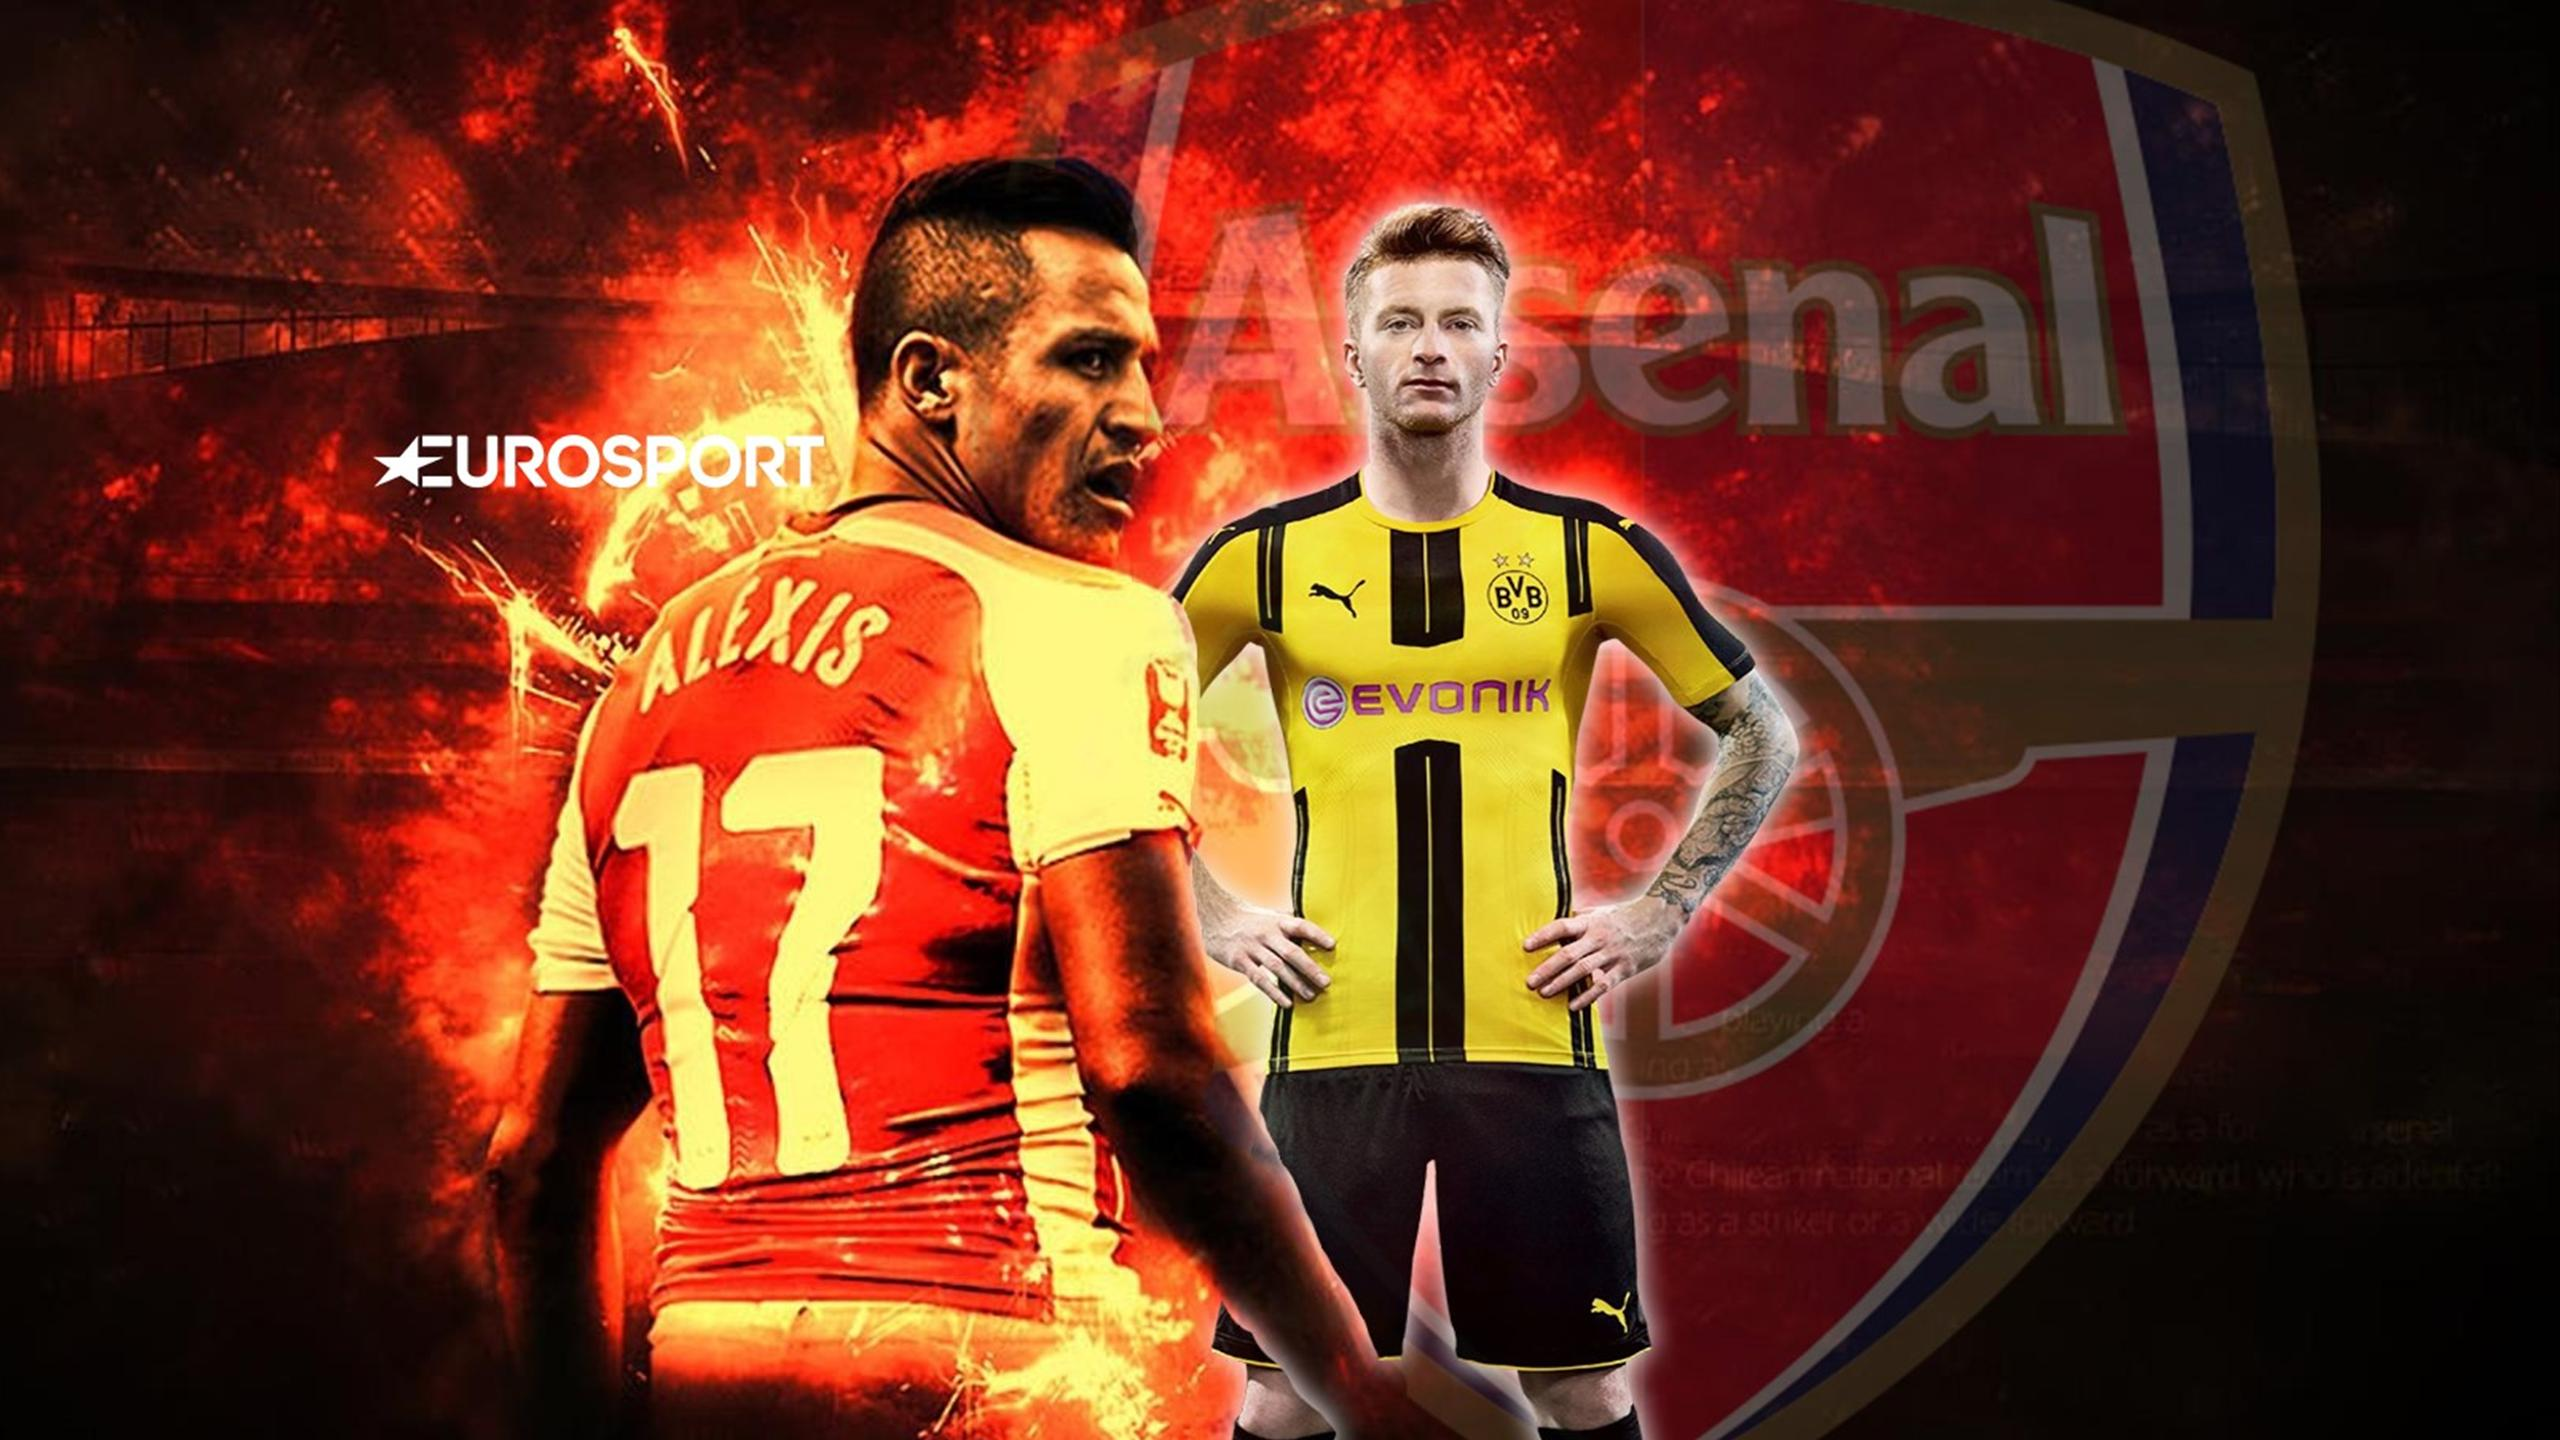 Arsenal consider Reus transfer as fears grow over Sanchez - Euro Papers